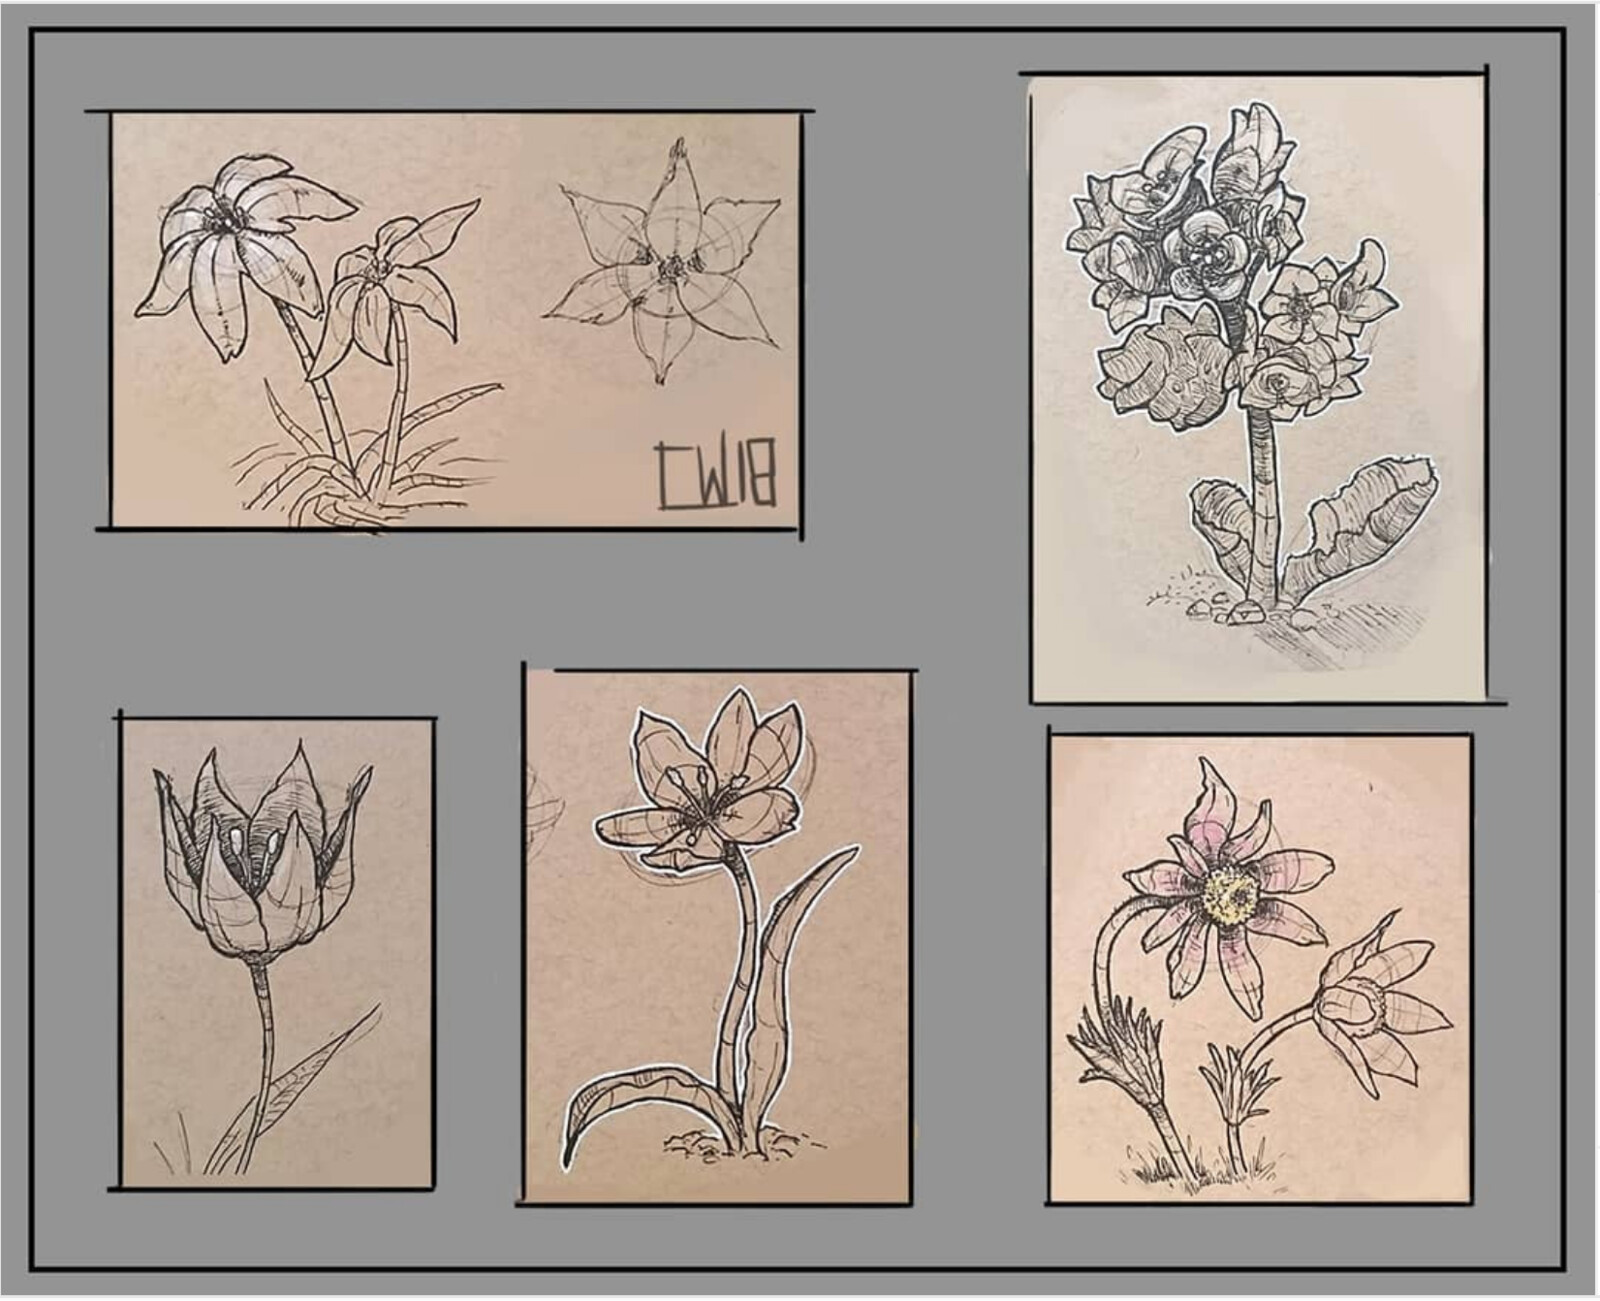 Flower studies in ink